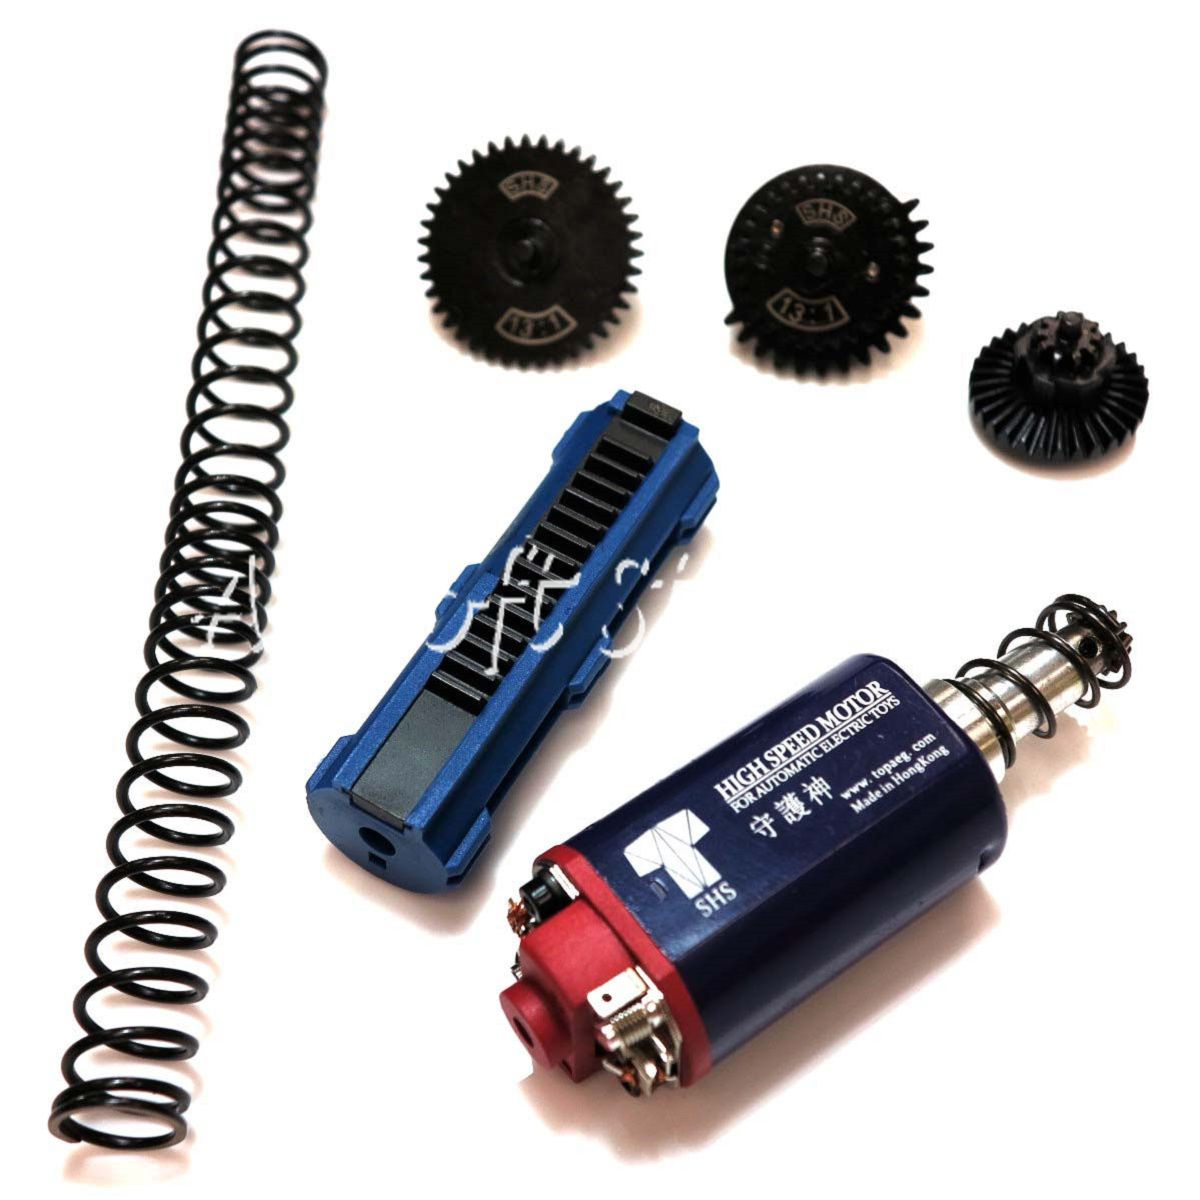 Airsoft Tactical Gear SHS-314 High Speed Motor & Gear Tune-Up Set for M4 AEG